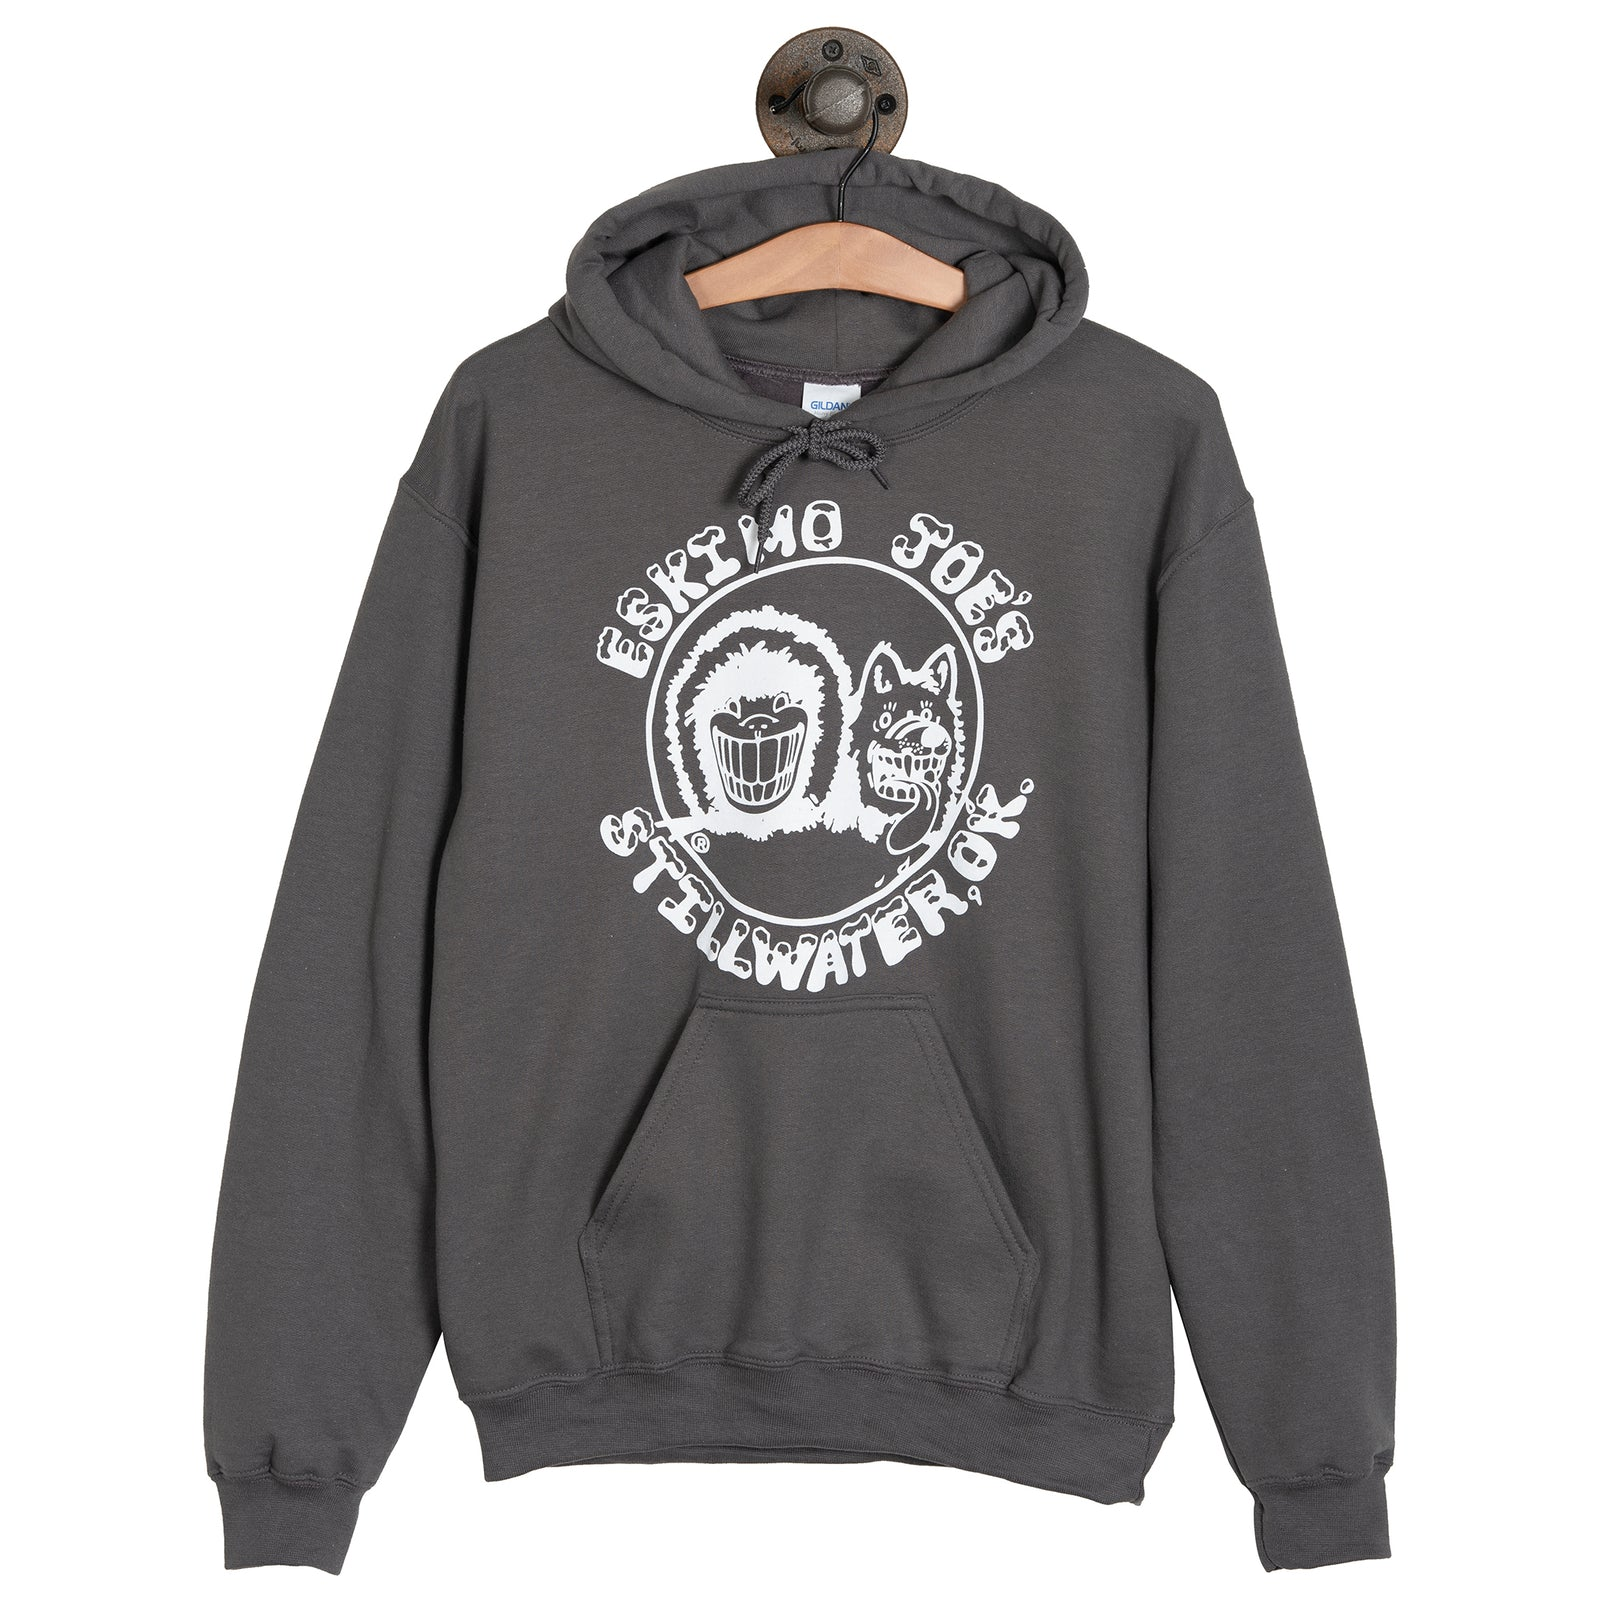 JOE'S HOODED SWEAT - JHS